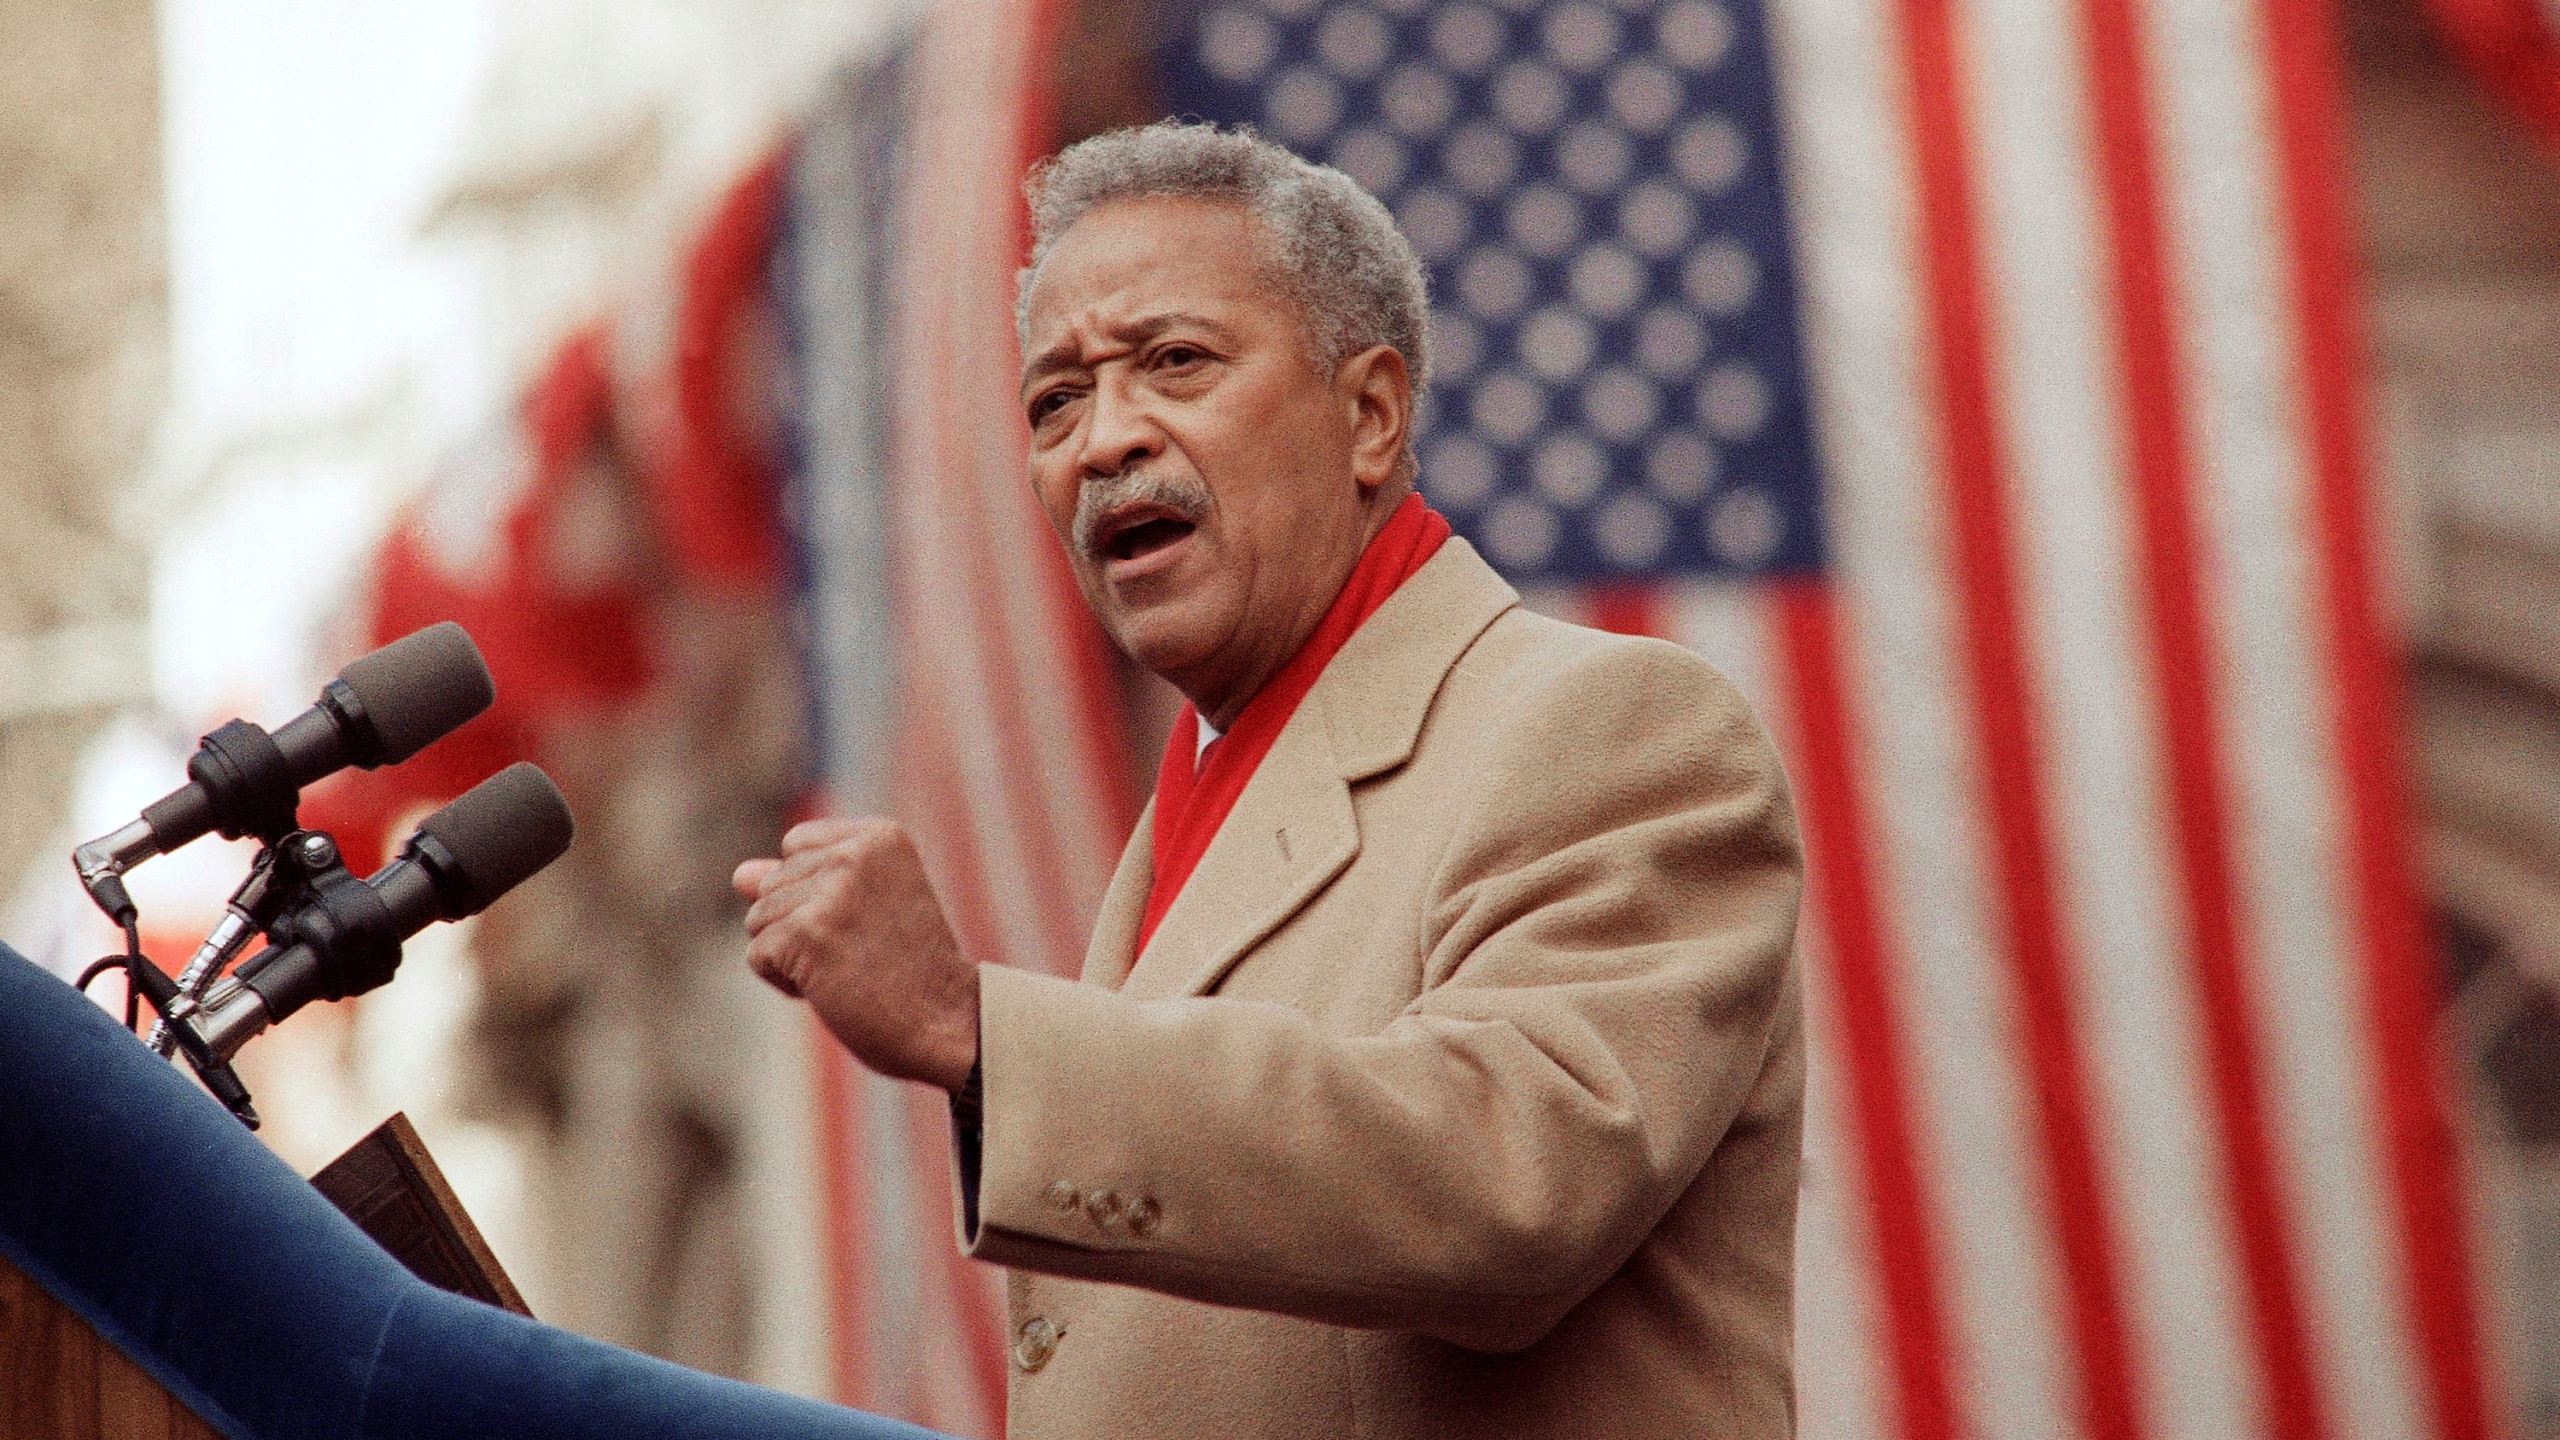 David Dinkins delivers his first speech as mayor of New York on Jan. 2, 1990. (Frankie Ziths / Associated Press)